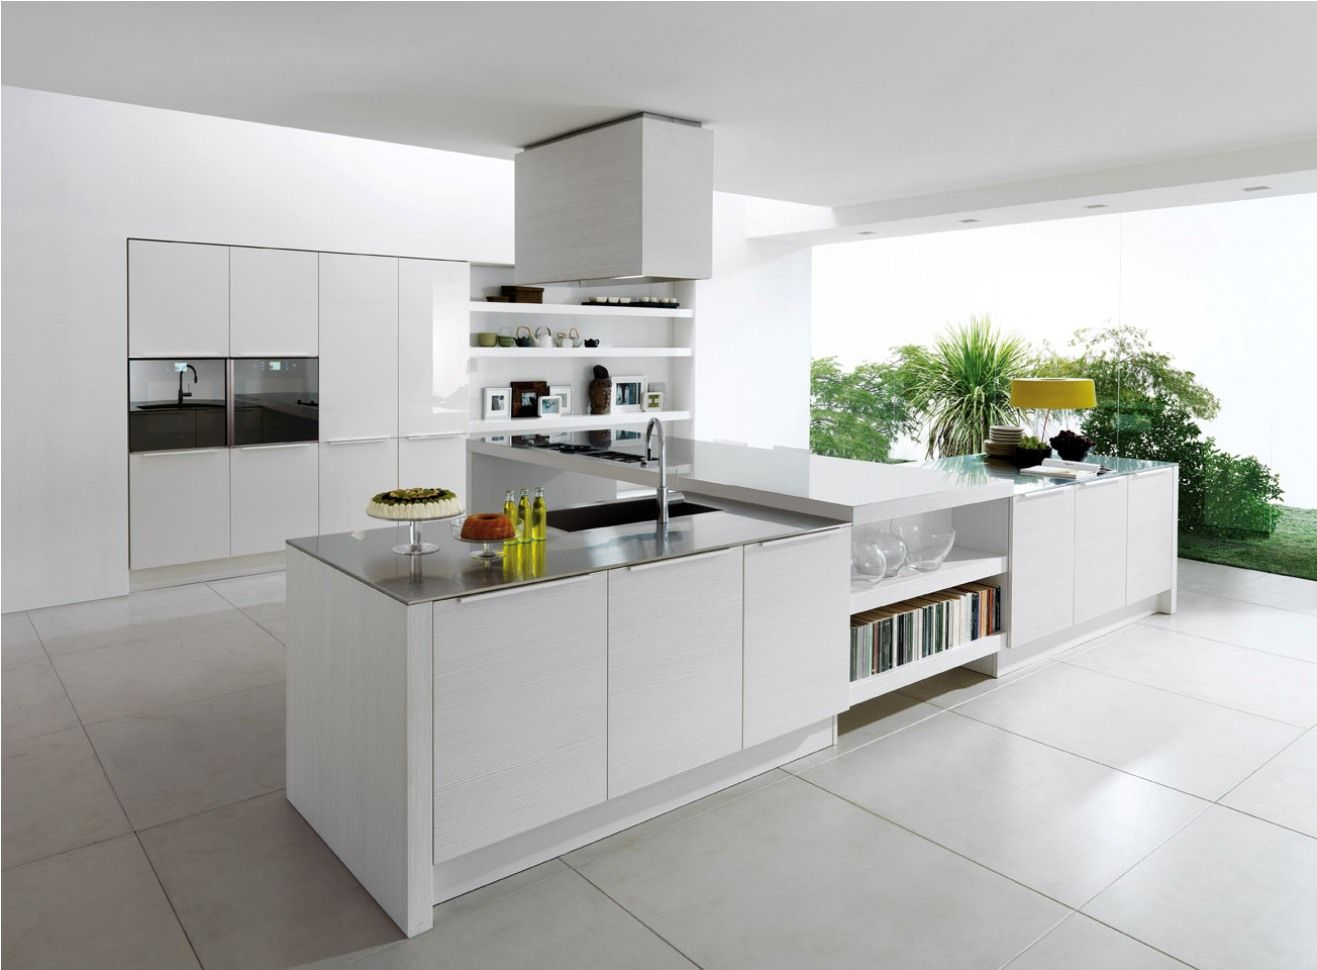 30 contemporary white kitchens ideas modern kitchen designs Modern kitchen design ideas